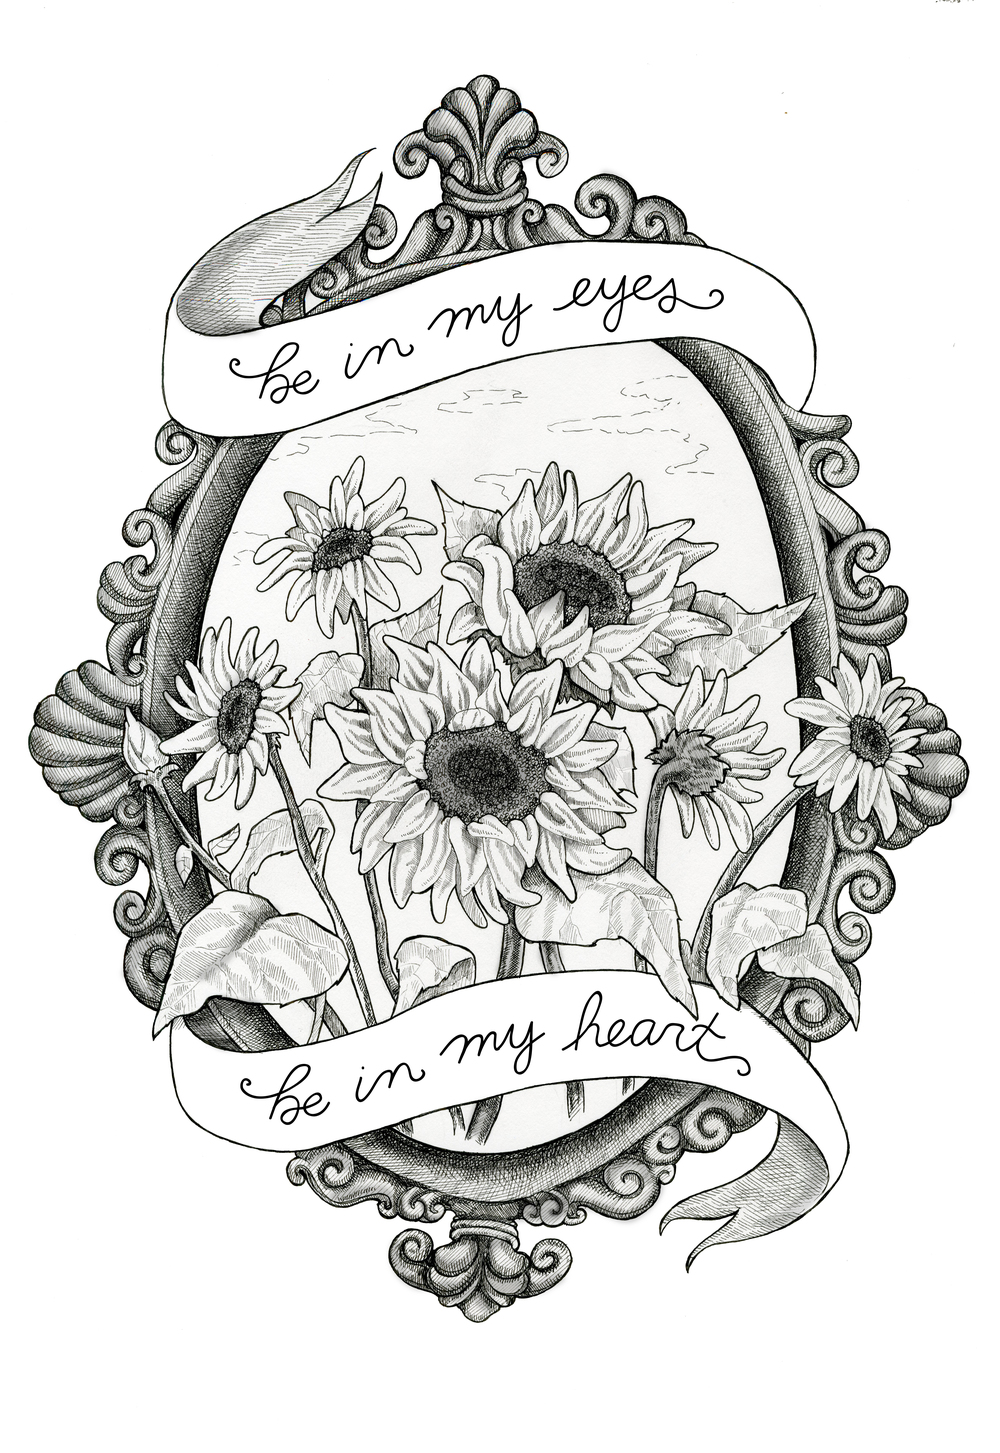 """Flowers In Your Hair""  - ersonal piece I did using the lyrics of the song ""Flowers in Your Hair"" by the Lumineers.   Lyrics belong to The Lumineers."